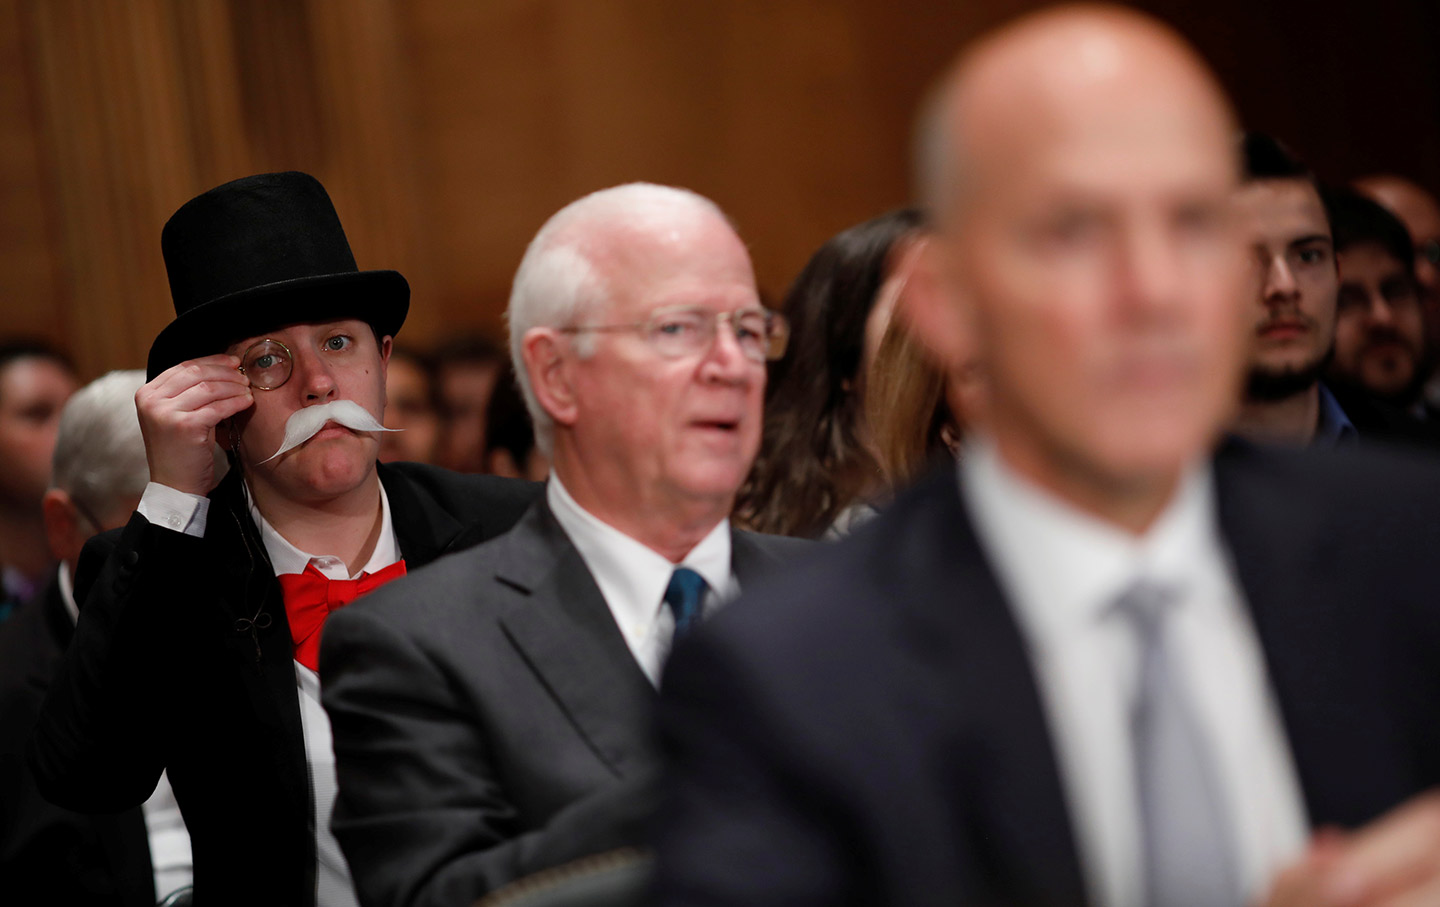 Monopoly Man at Equifax hearing